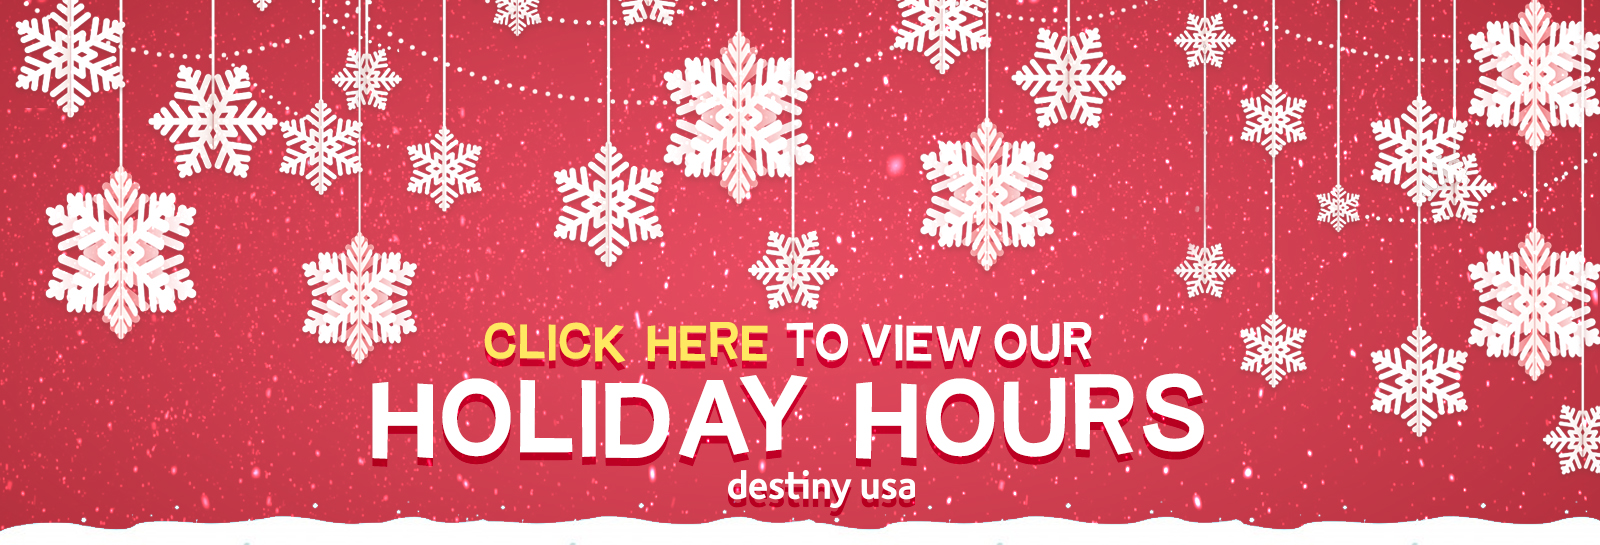 2019 11 15 dusa holiday hours slider